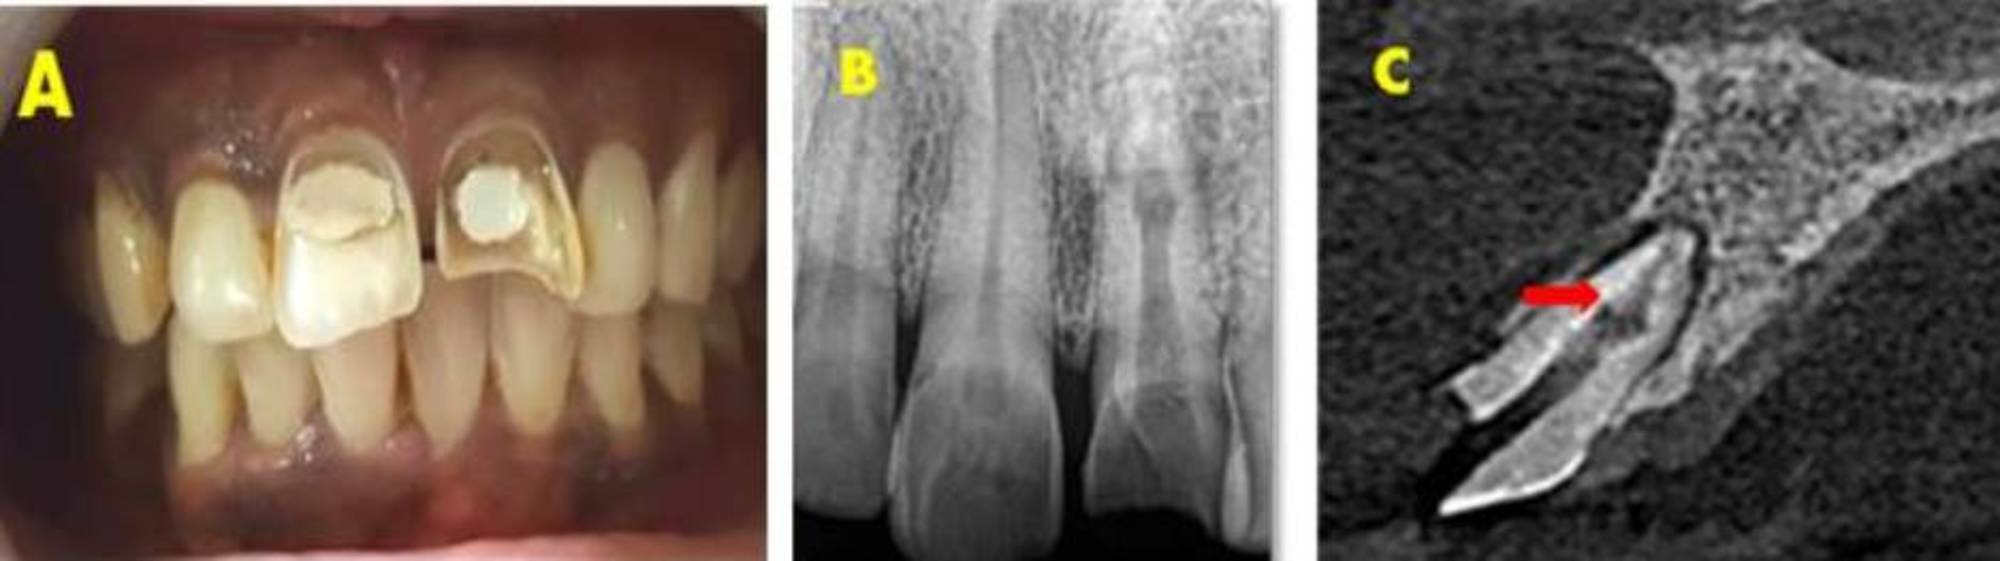 Cureus   Clinical Management of Root Resorption: A Report of